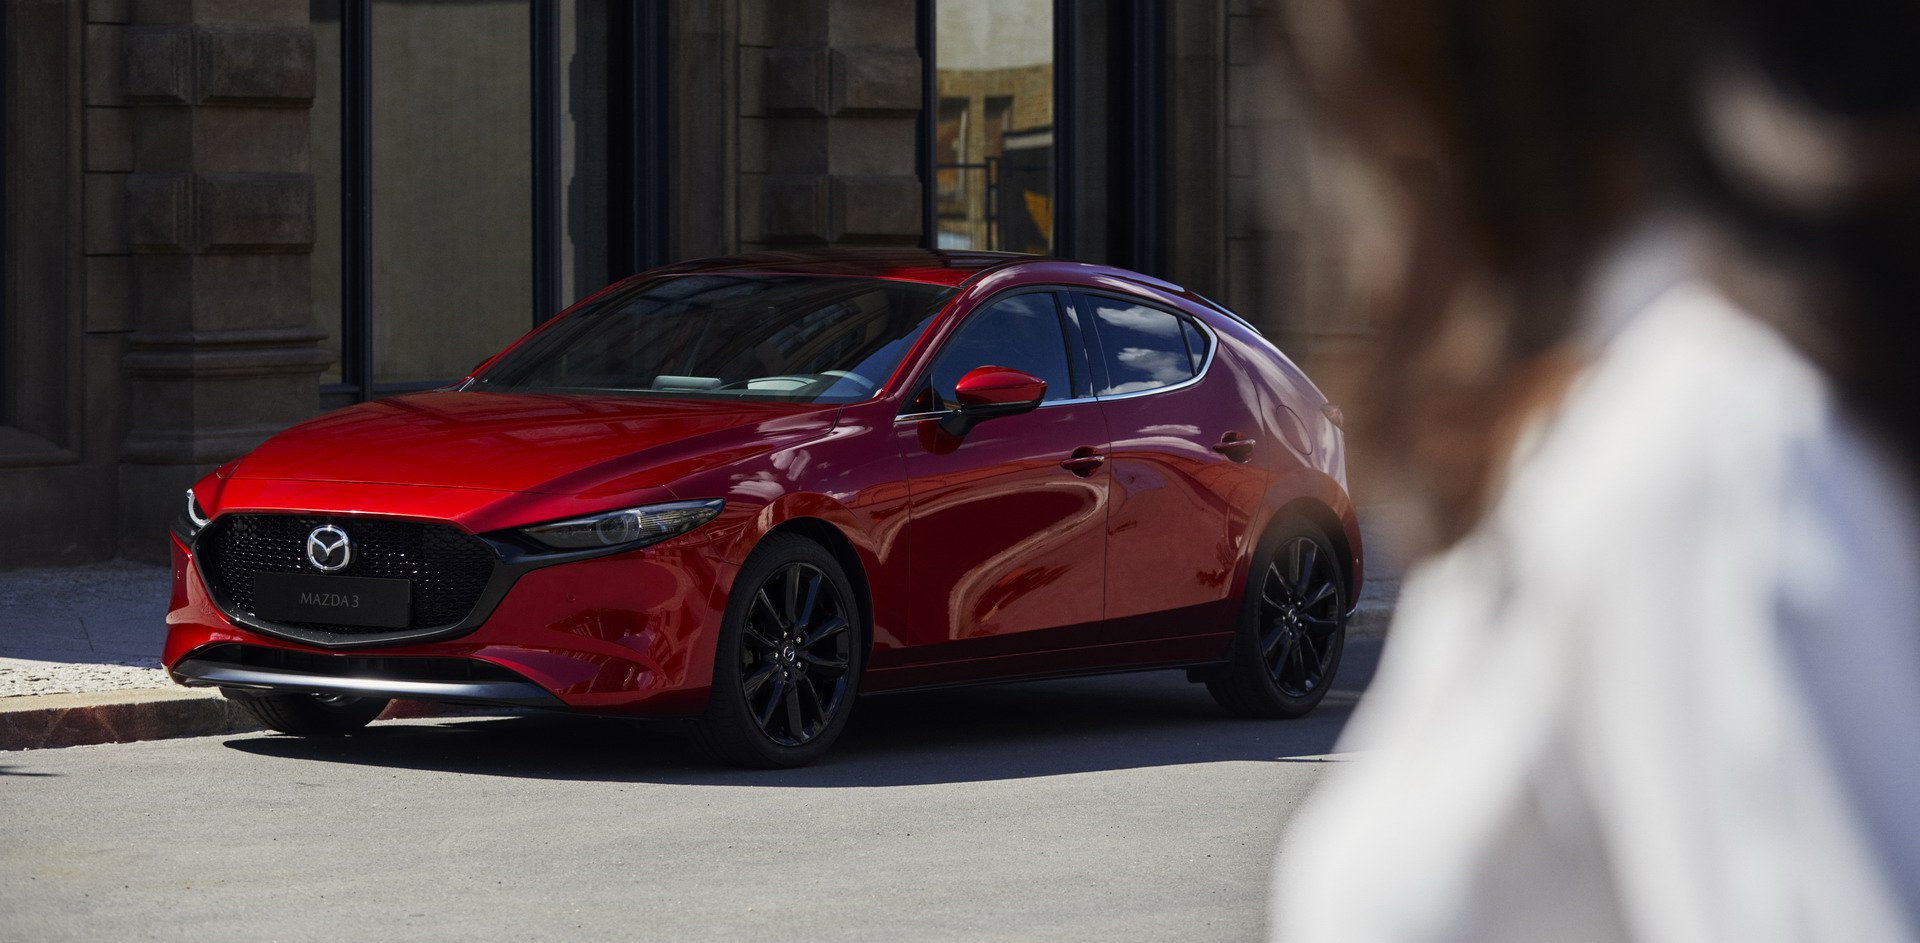 Mazda3 Hatchback and Mazda3 sedan 2019 (2)